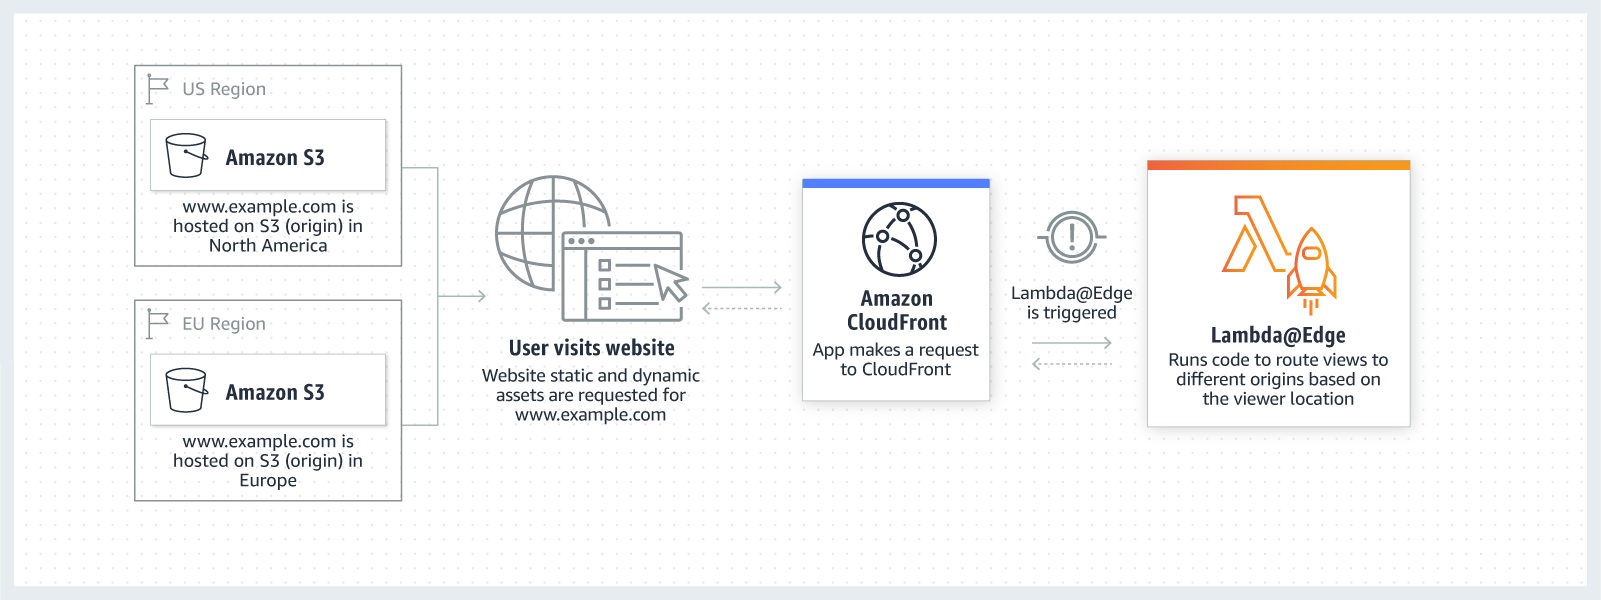 AWS-Lambda-at-Edge_Intelligently-Route-Across-Origins-Data-Centers-diagram